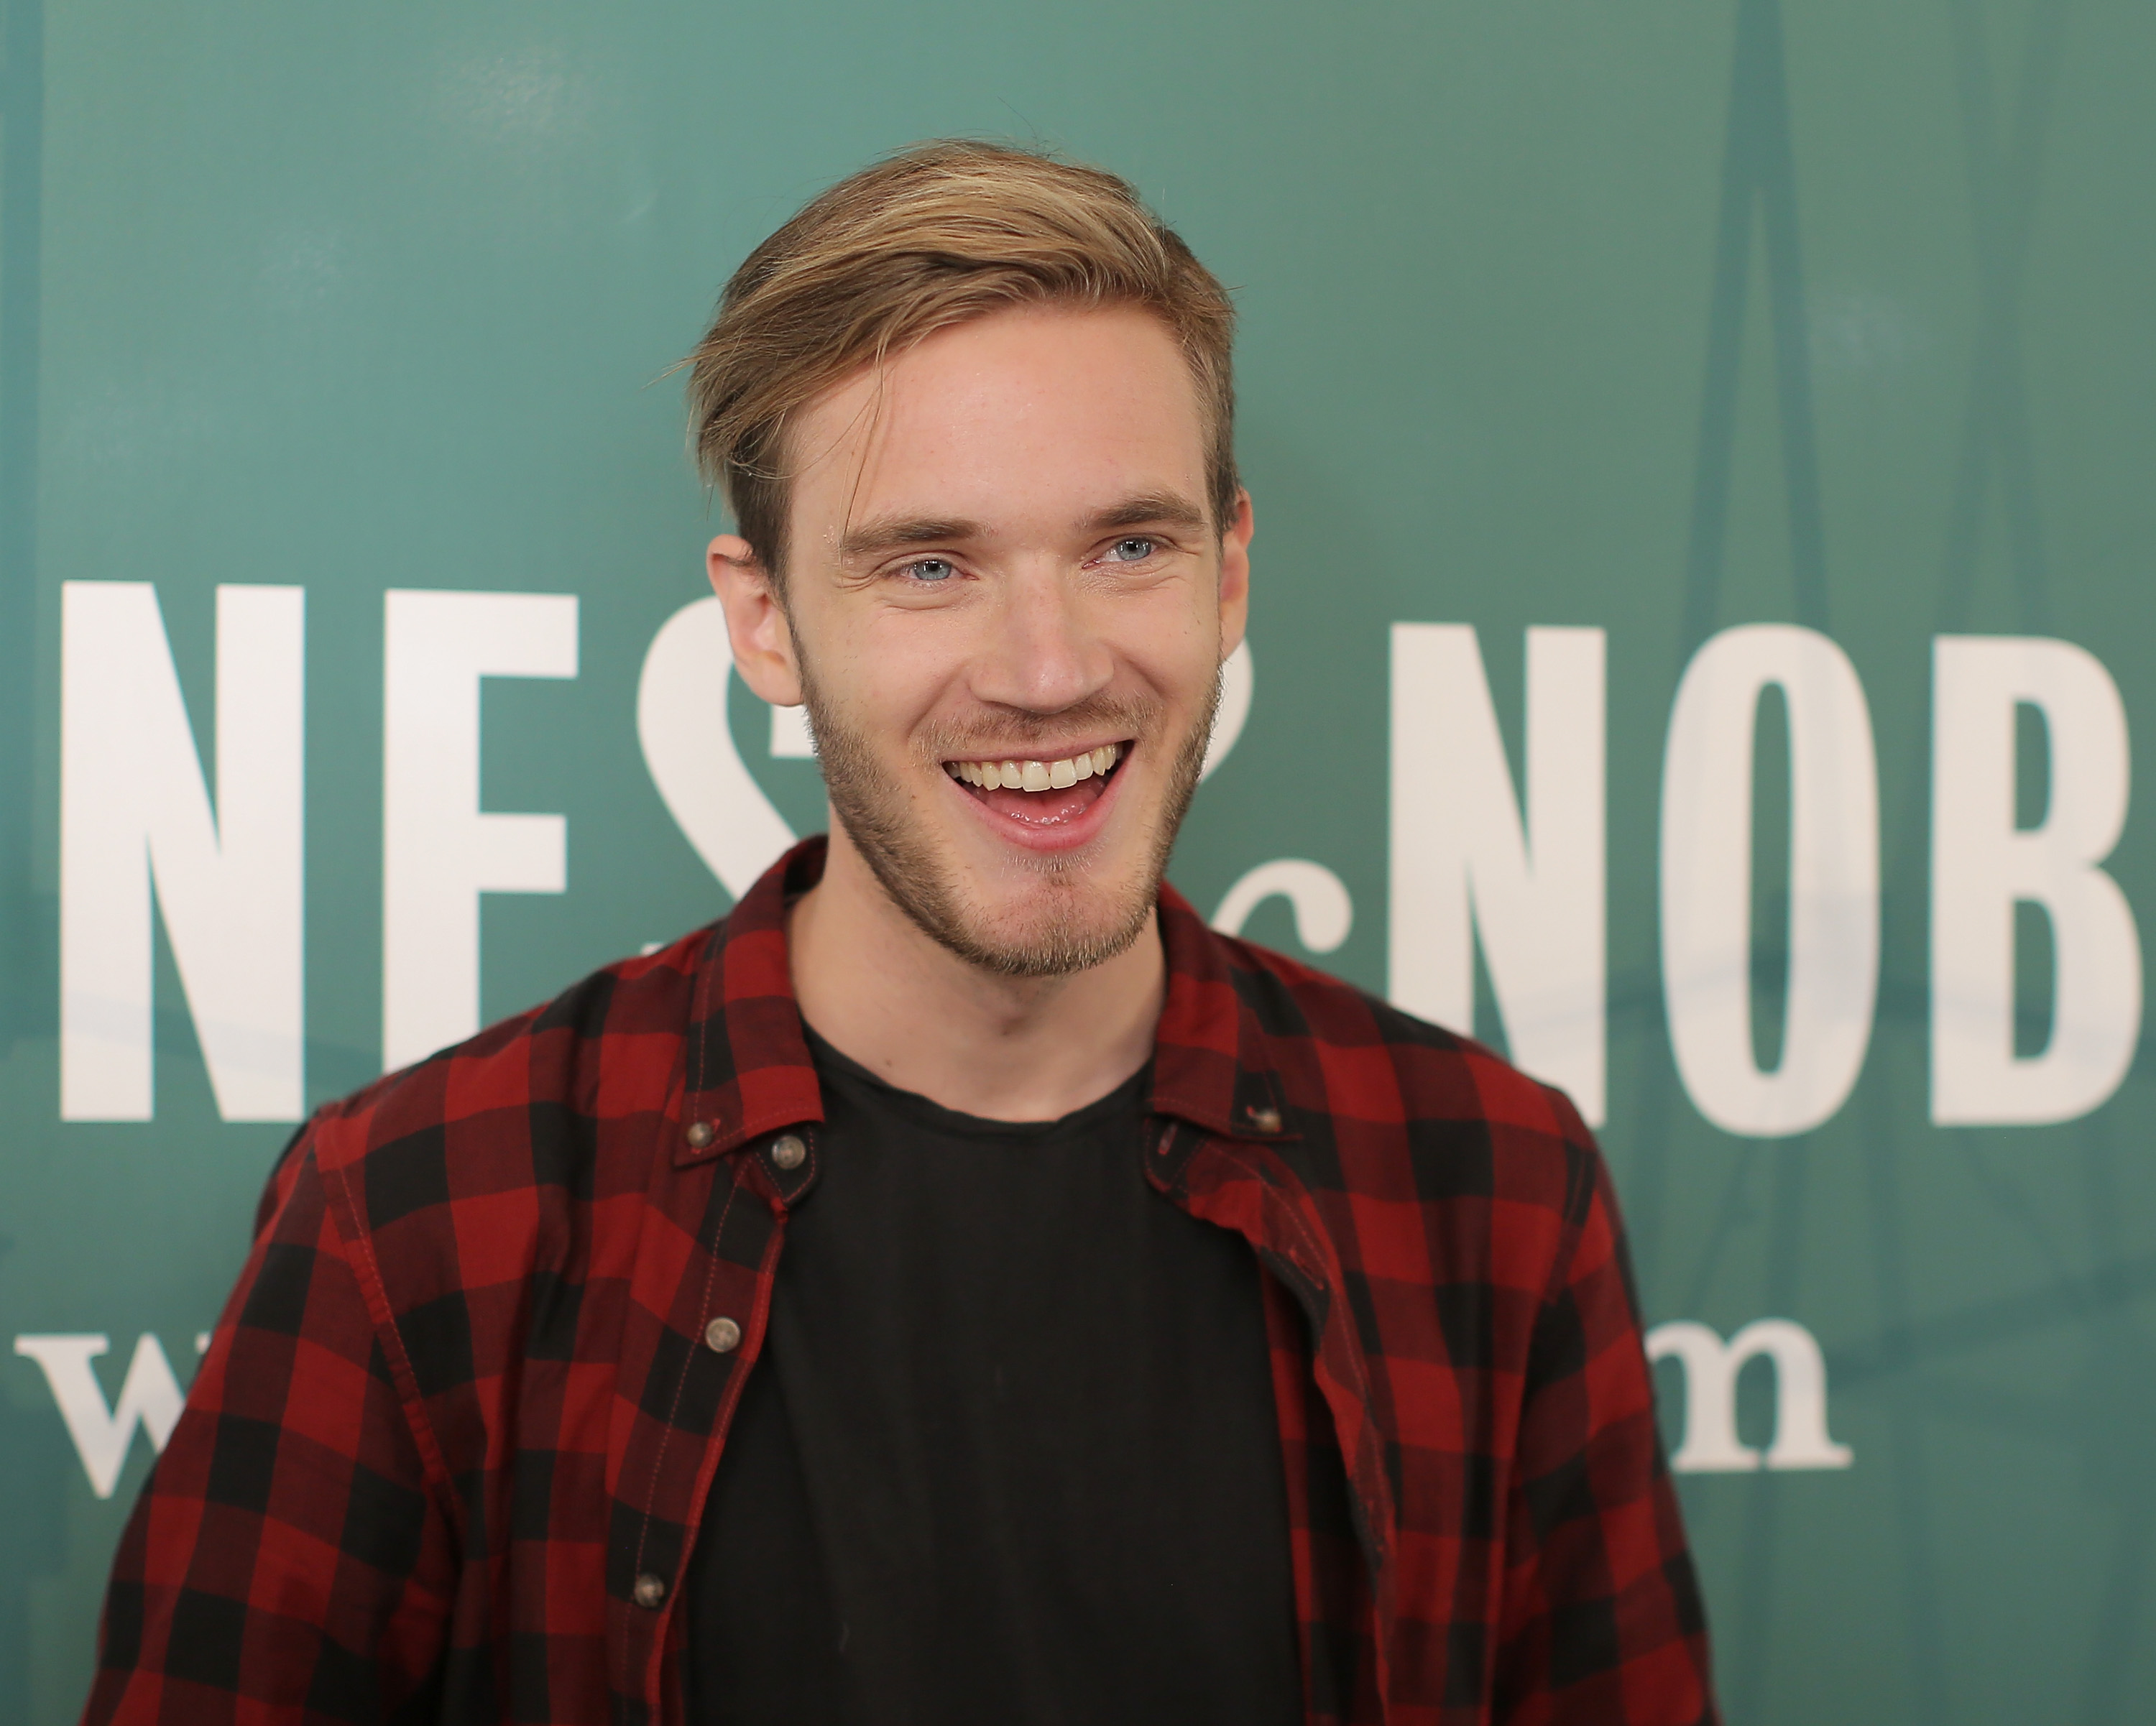 PewDiePie 'scandal': YouTube star hits back over claims he took money from Warner Bros for positive reviews